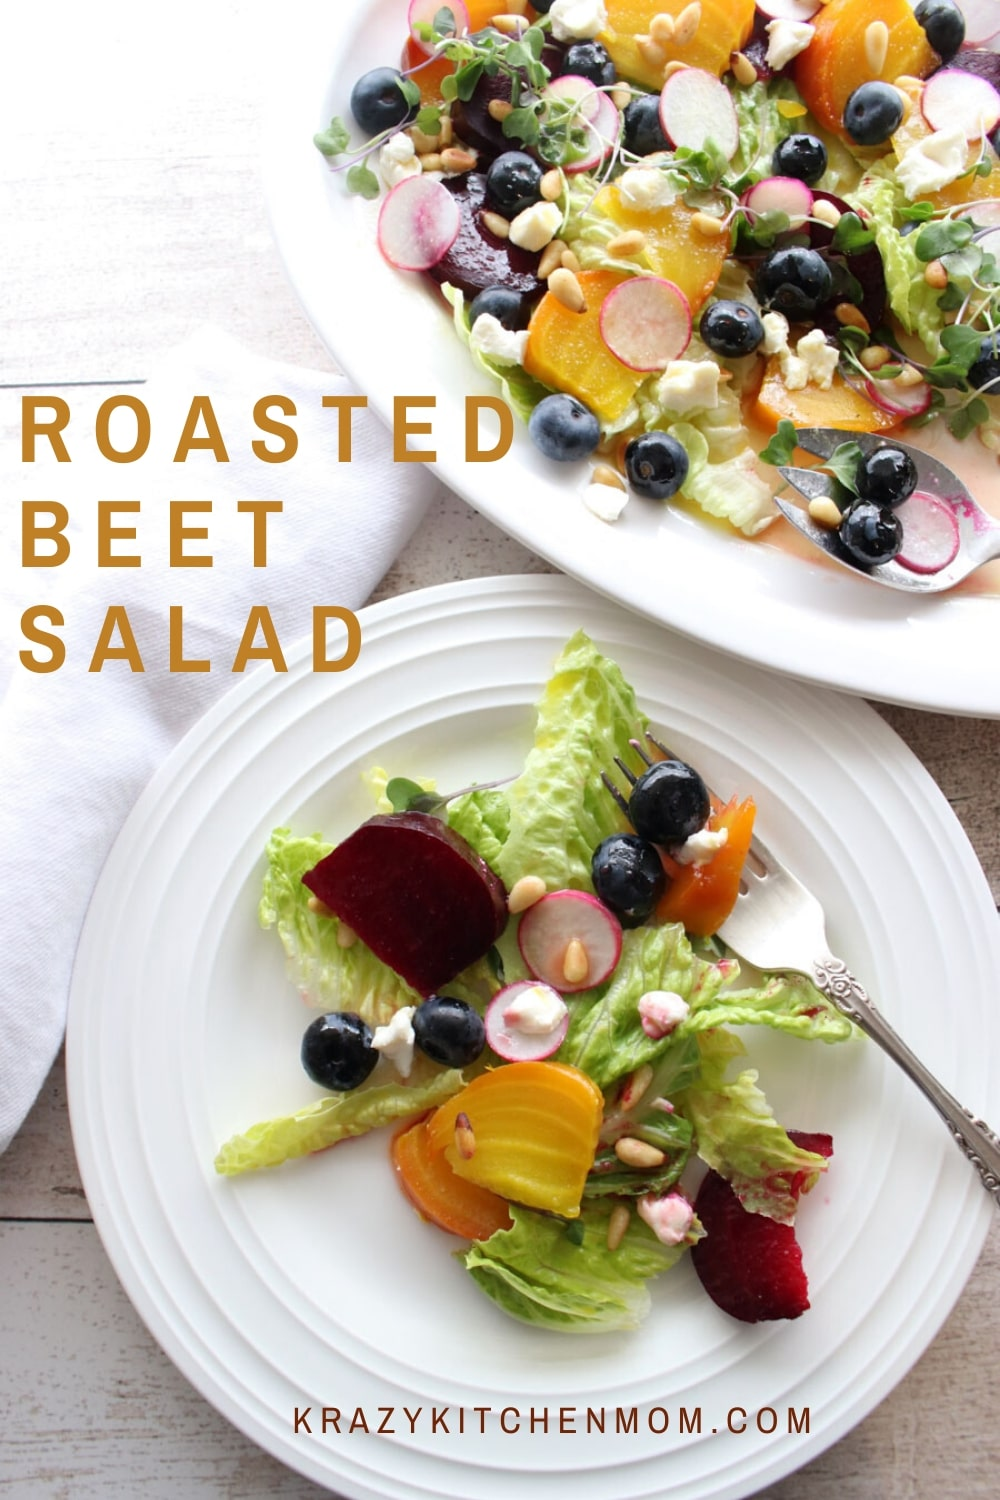 Roasted Beet Salad with Goat Cheese is a healthy and beautiful way to pick up your salad game. Toss it with a fresh bright vinaigrette for a winning taste sensation. via @krazykitchenmom